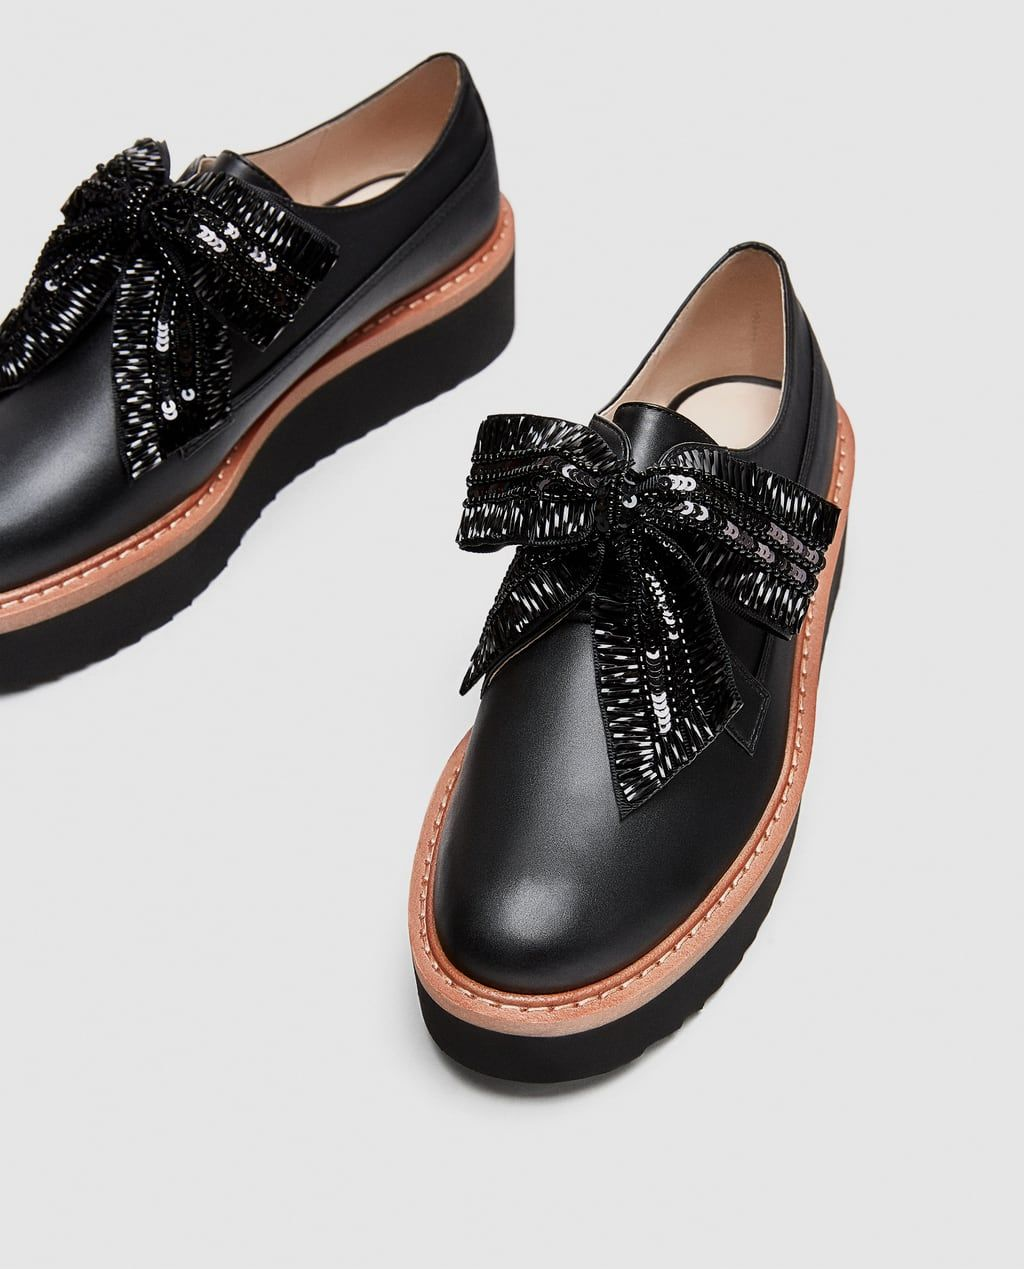 39045a00263 Image 5 of PLATFORM DERBY SHOES WITH BOW from Zara Zapatos Negros